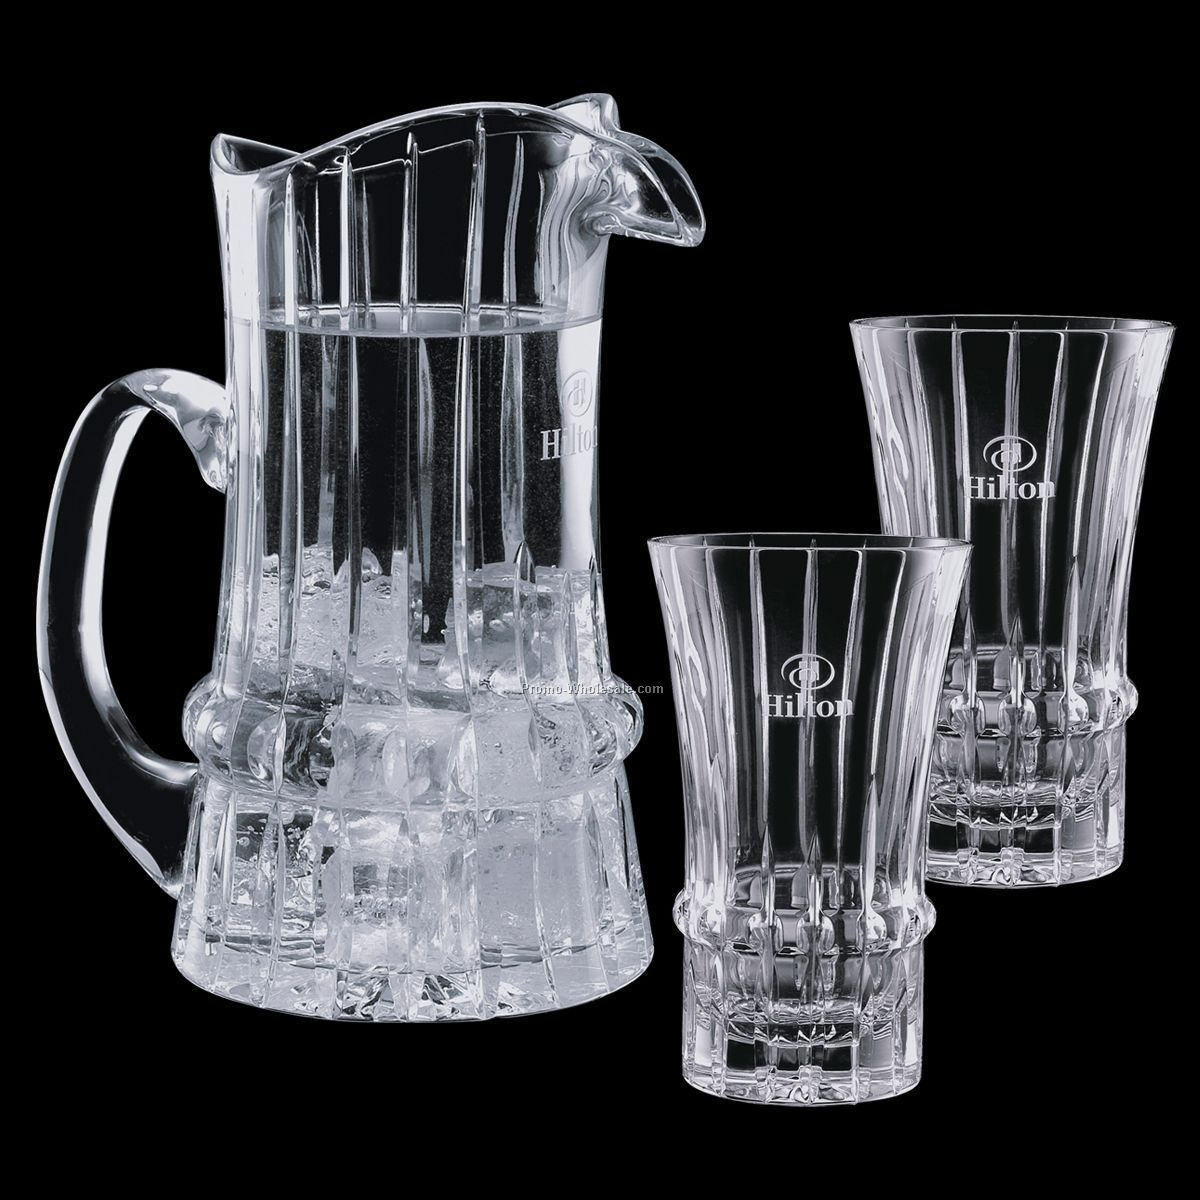 30 Oz. Crystal Steinbach Pitcher And 2 Coolers